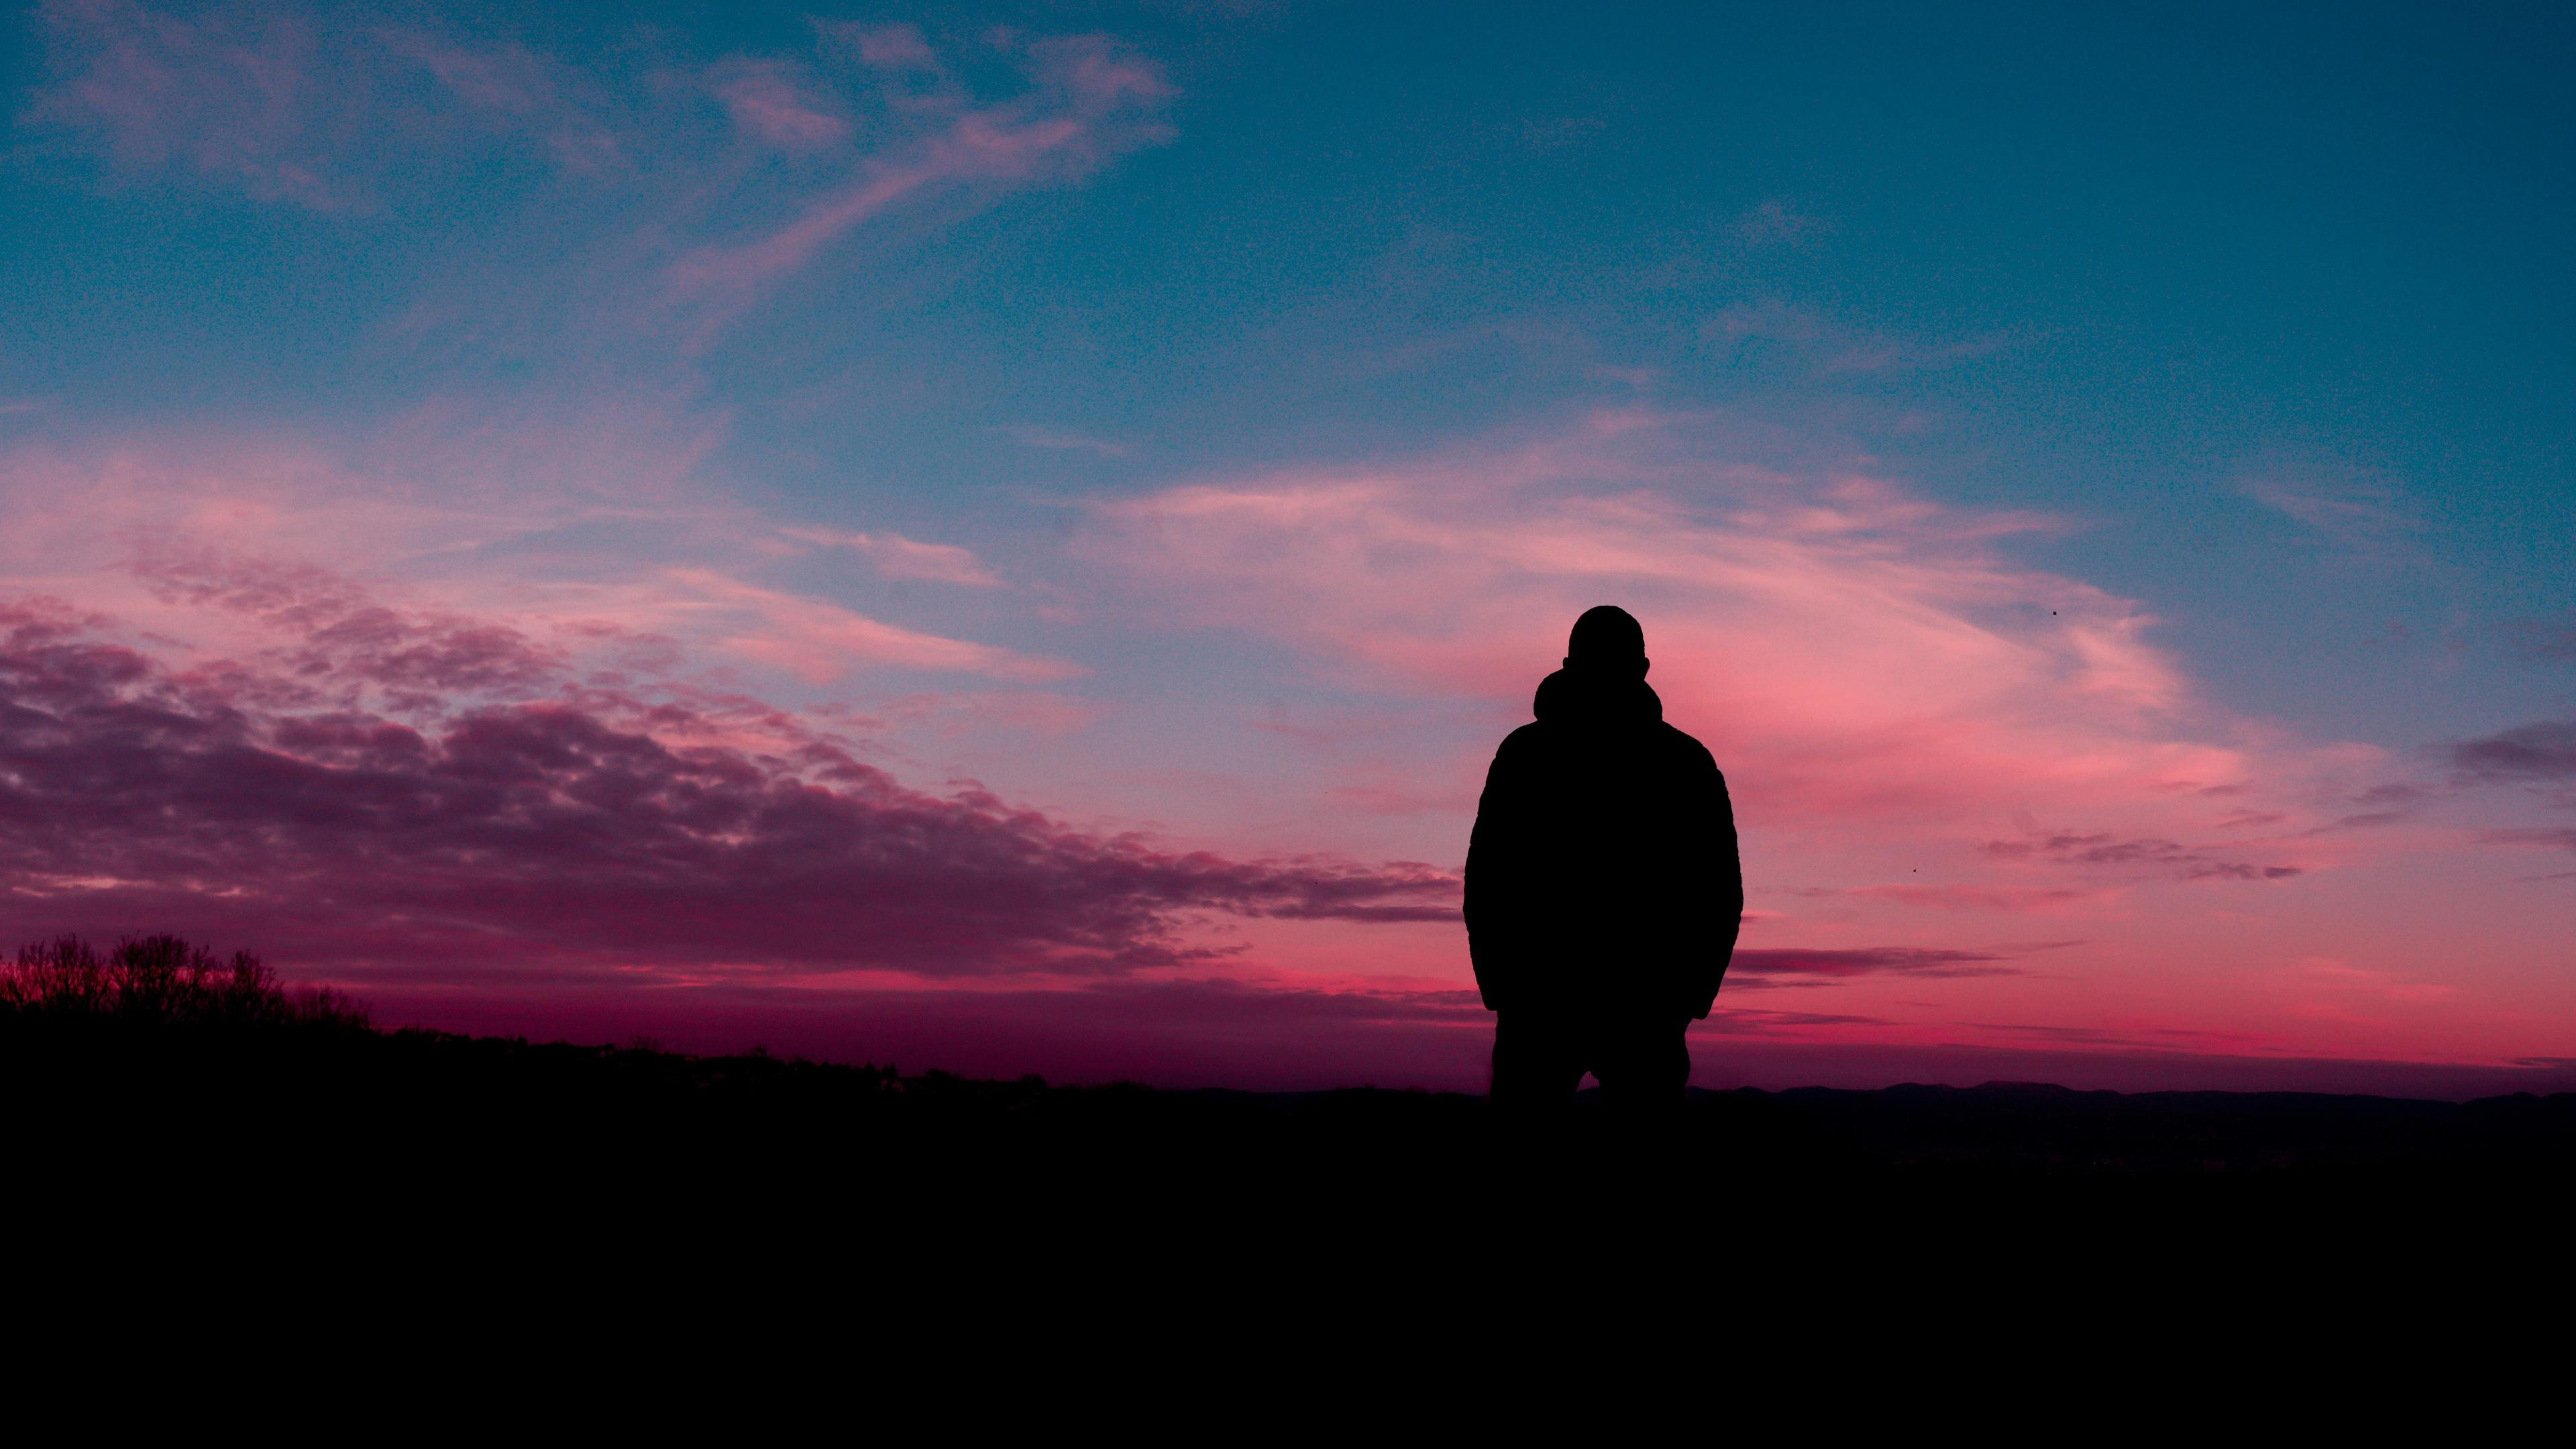 man silhouette sky solitude 4k 1540138458 - Man Silhouette Sky Solitude 4k - sky wallpapers, silhouette wallpapers, nature wallpapers, man wallpapers, hd-wallpapers, 5k wallpapers, 4k-wallpapers